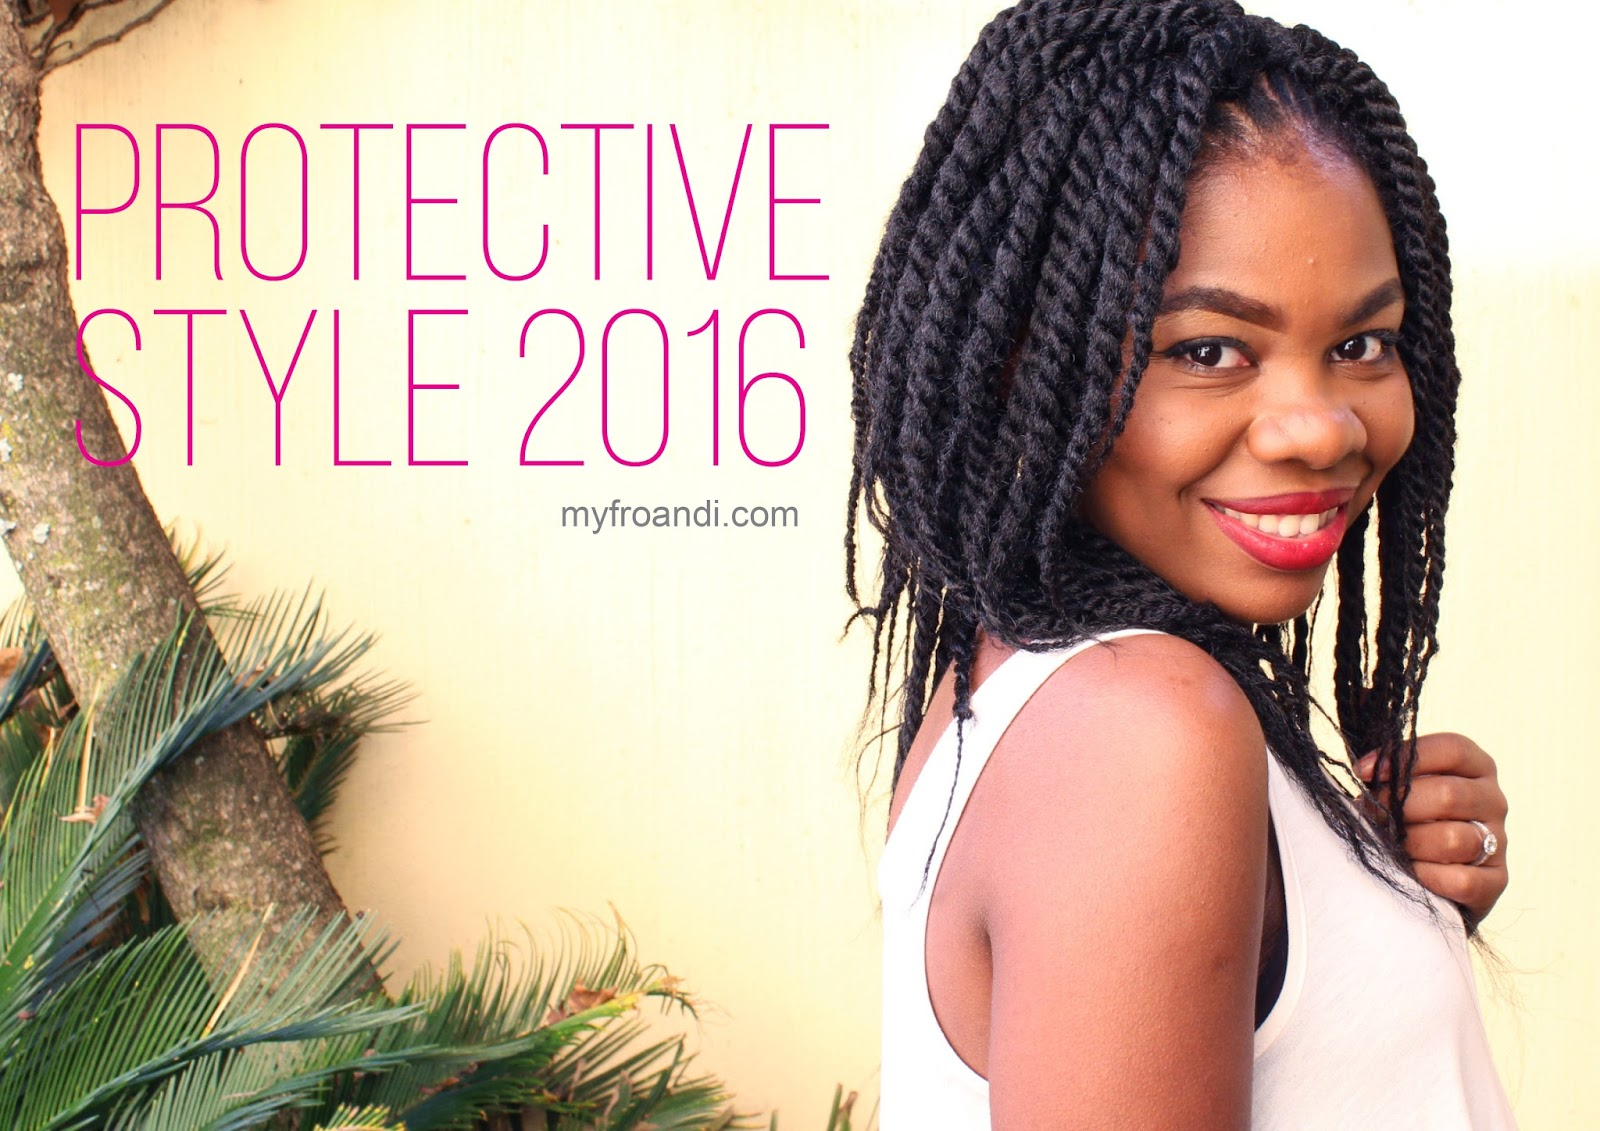 ... Natural Hair & Beauty Blog: Protective Style 2016: Crochet Braids